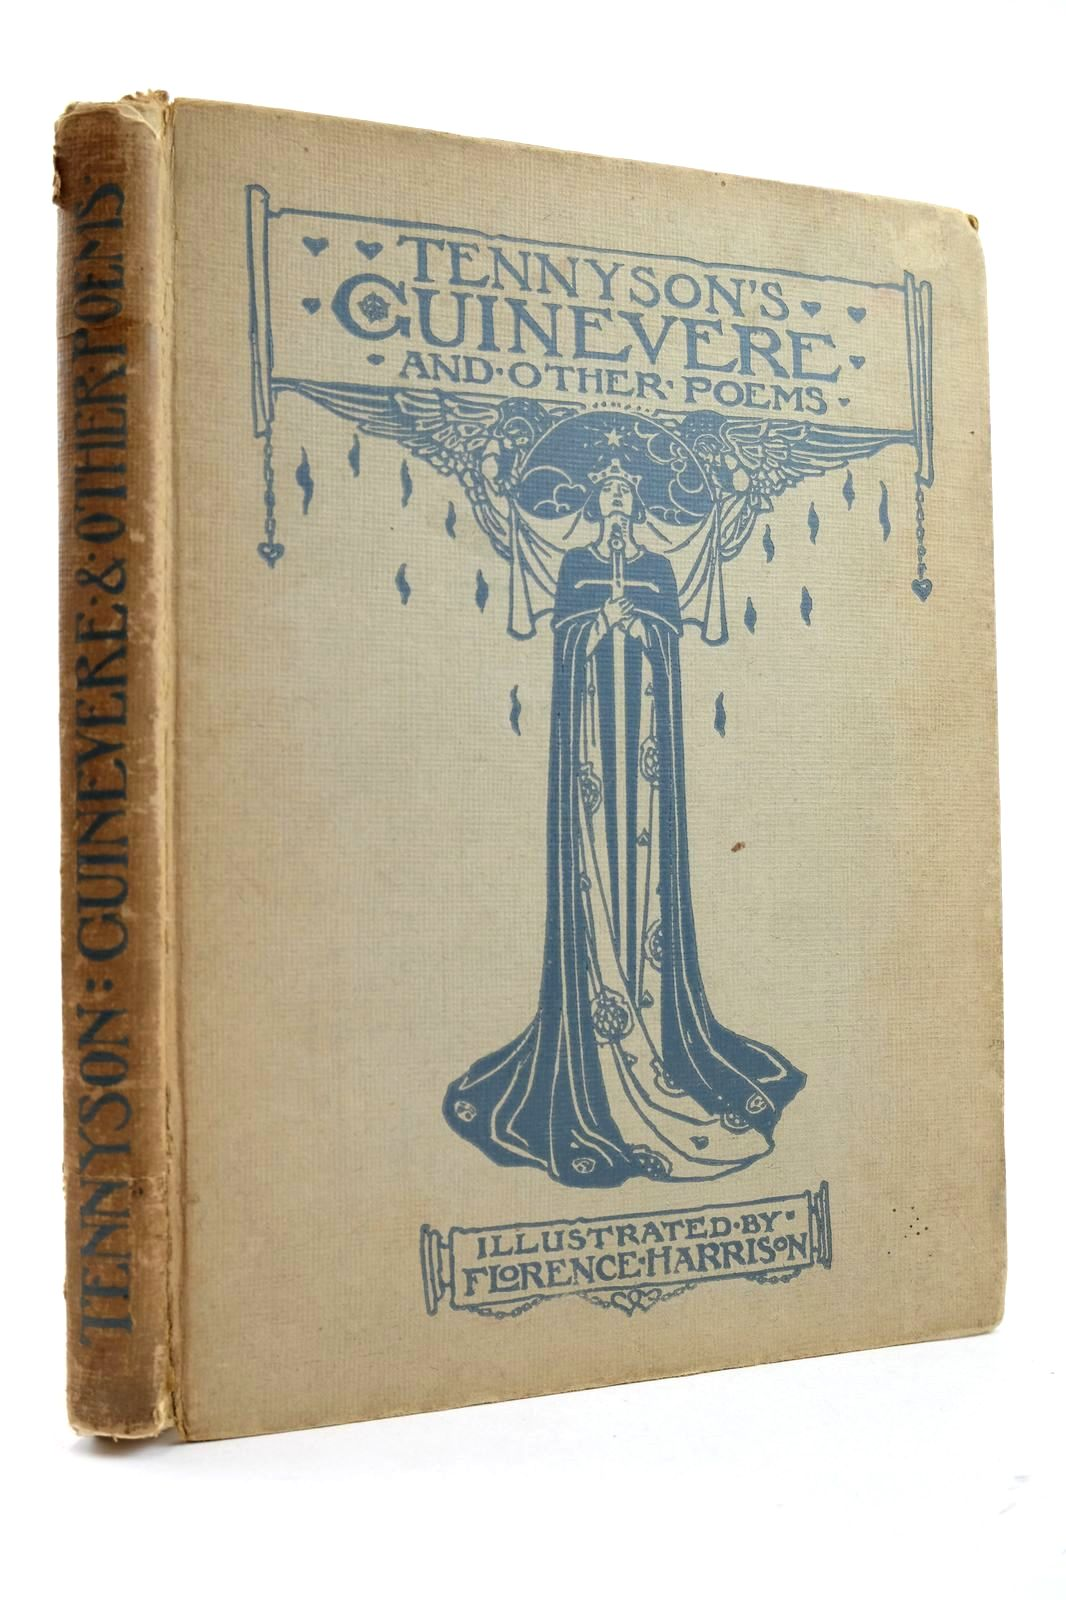 Photo of TENNYSON'S GUINEVERE AND OTHER POEMS- Stock Number: 2132542